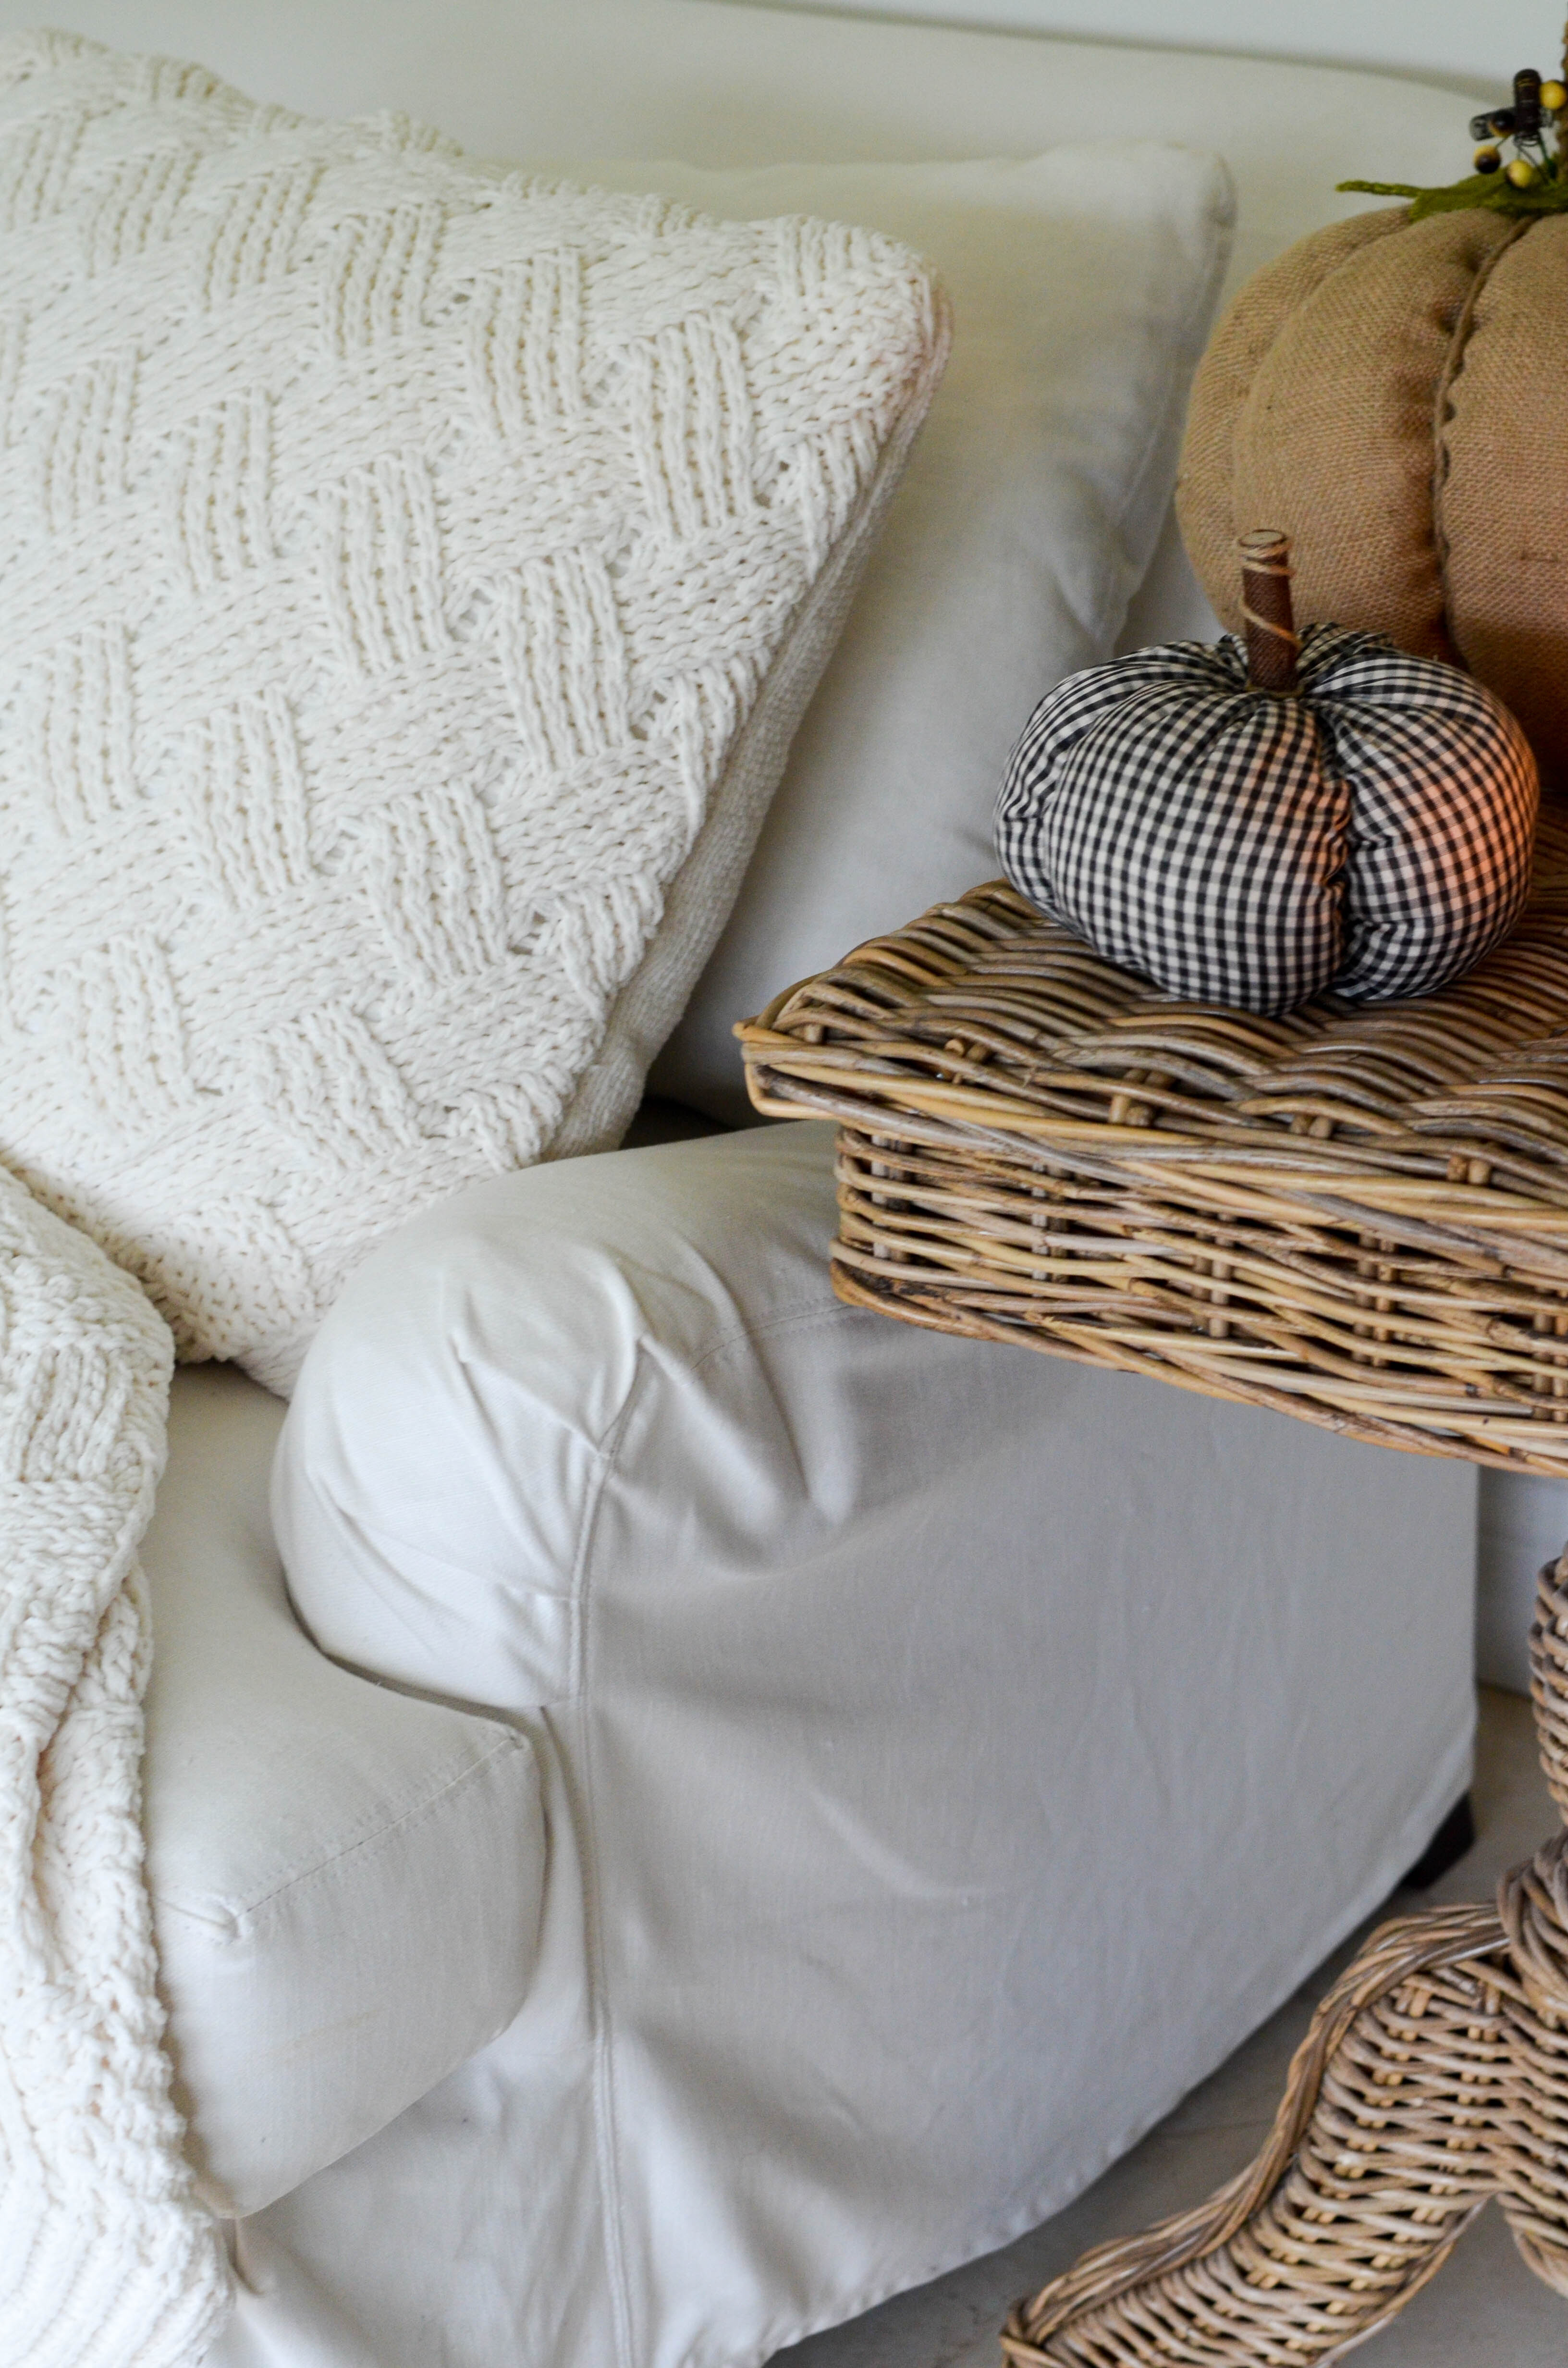 HOW TO KEEP A WHITE SLIPCOVERED SOFA CLEAN